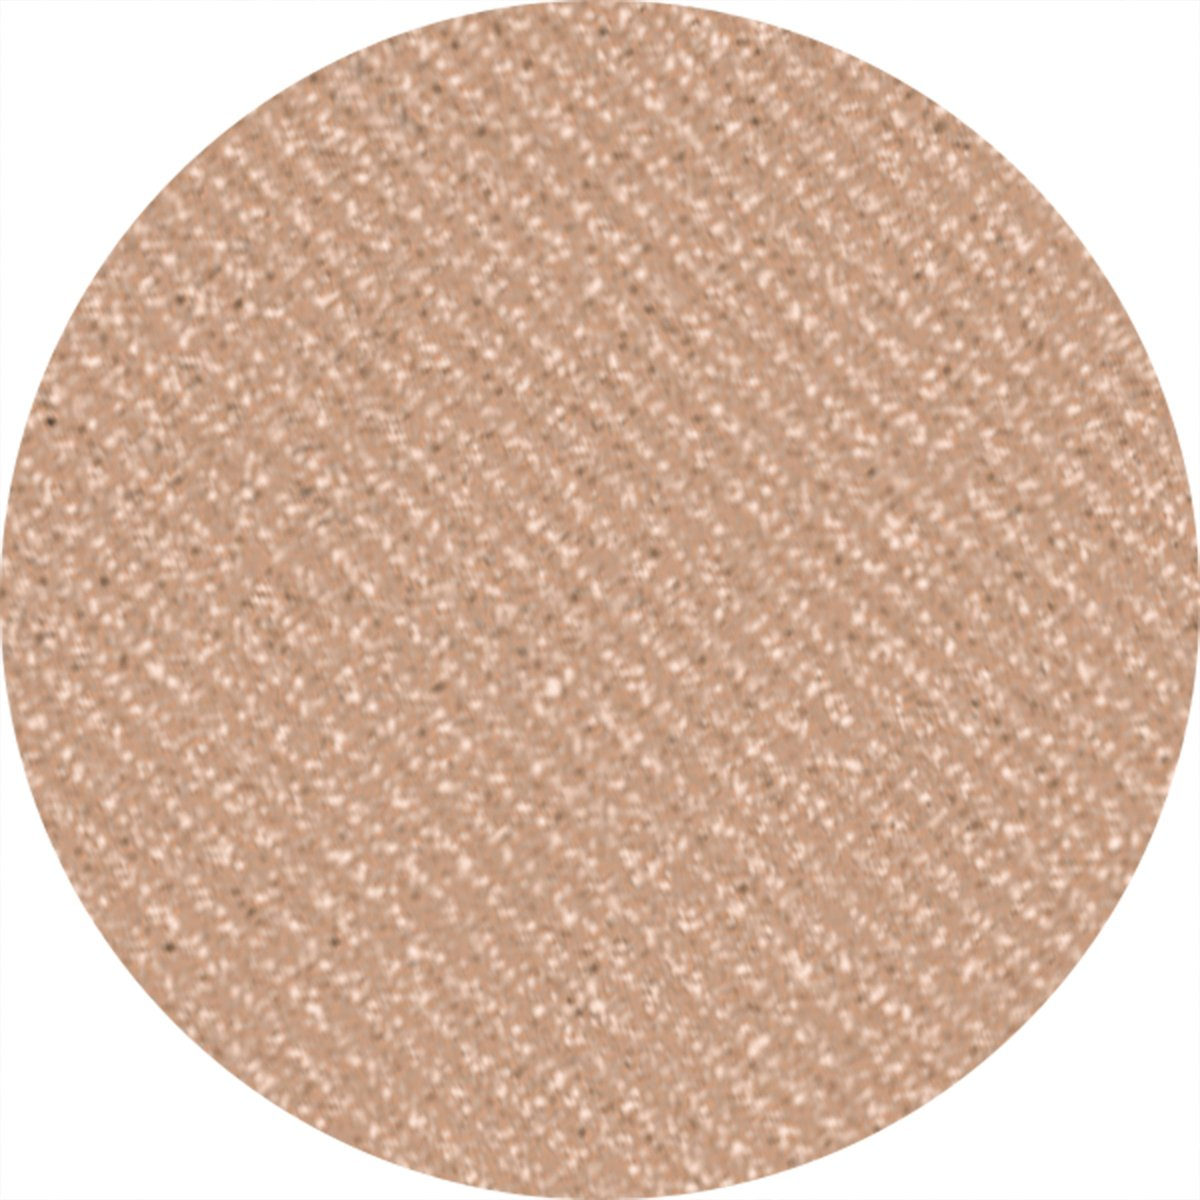 LORAC POREfection Baked Perfecting Powder, PF2 Light by LORAC (Image #2)